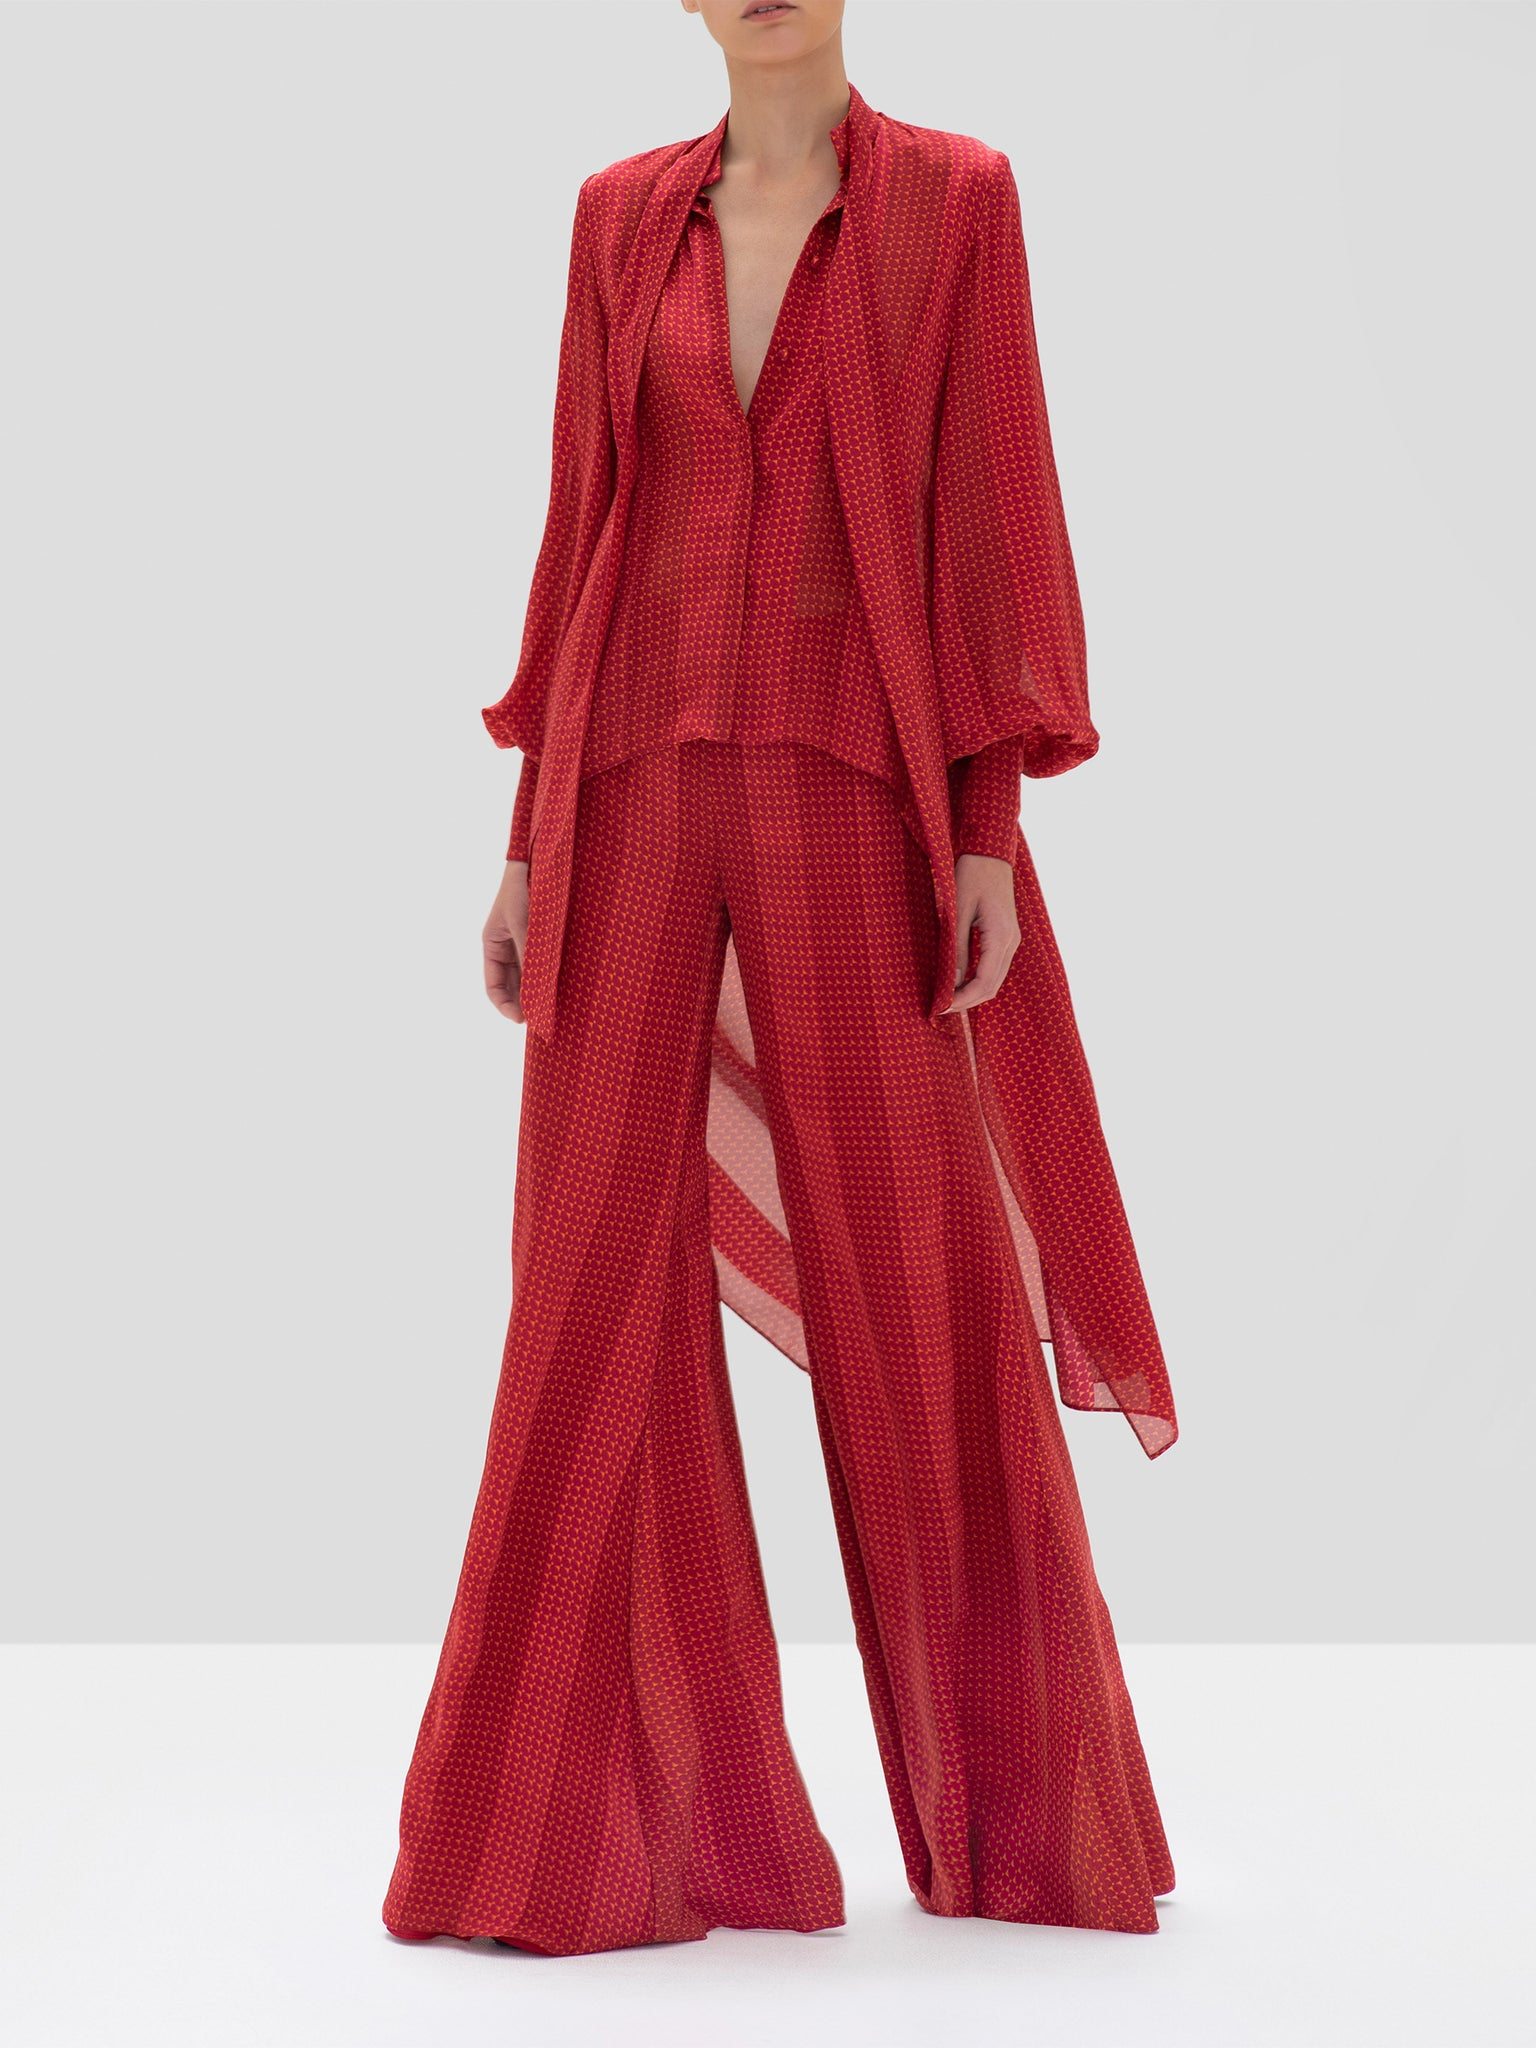 Alexis Fidelis Top and Sanjit Pants in Red Geo Stripes from the Fall Winter 2019 Collection